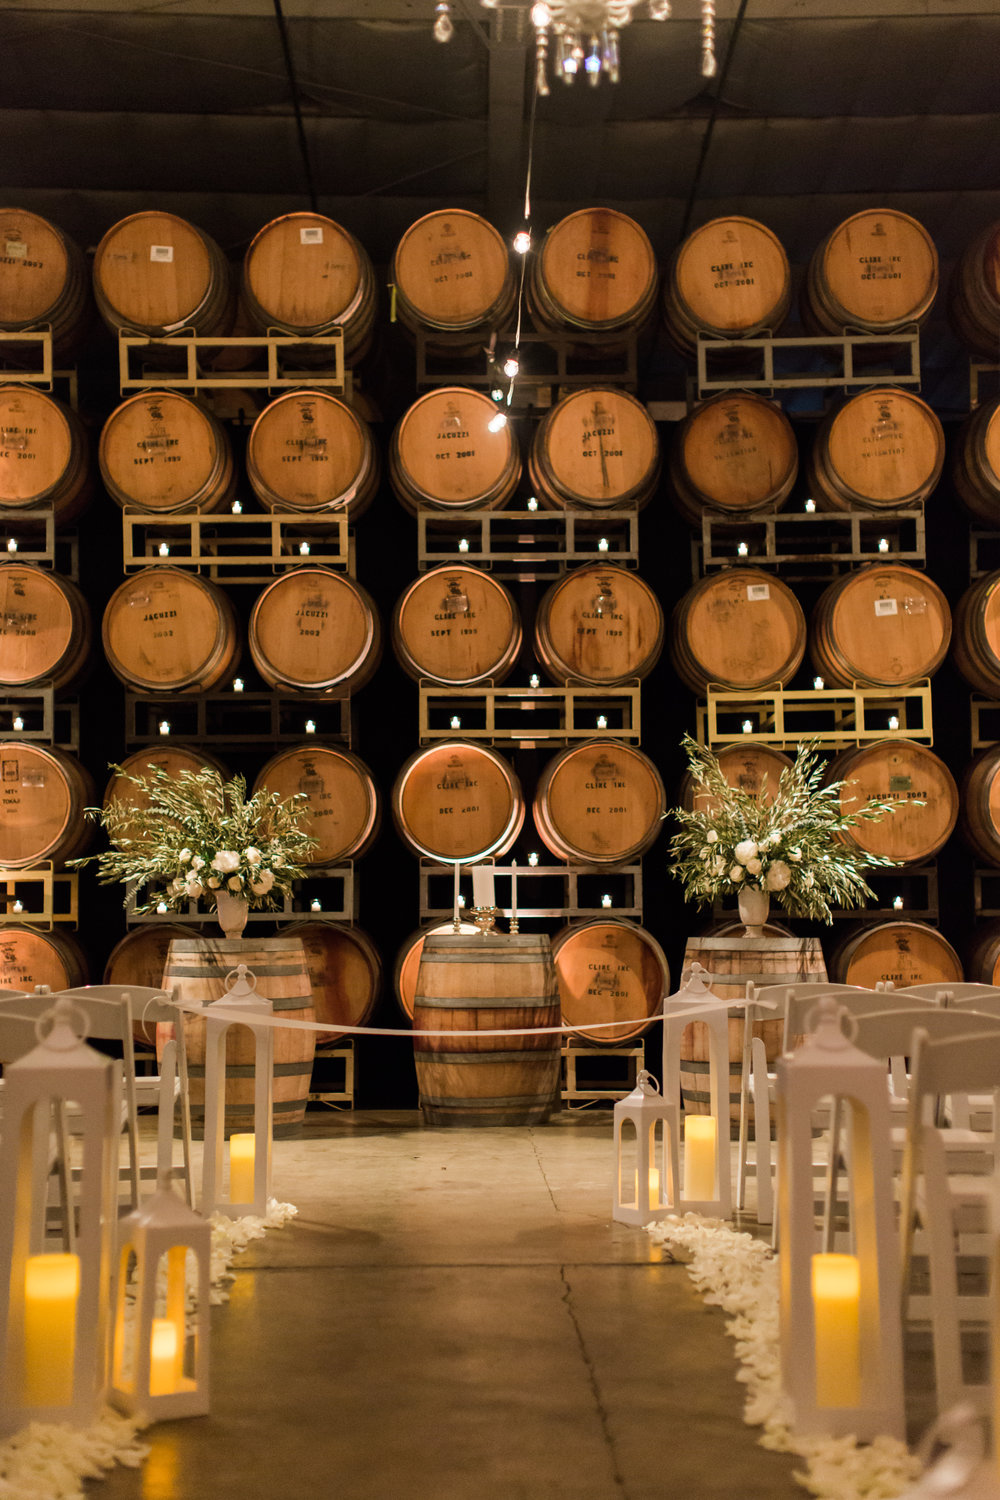 romantic-wedding-at-cline-winery-in-sonoma-california-65-2.jpg